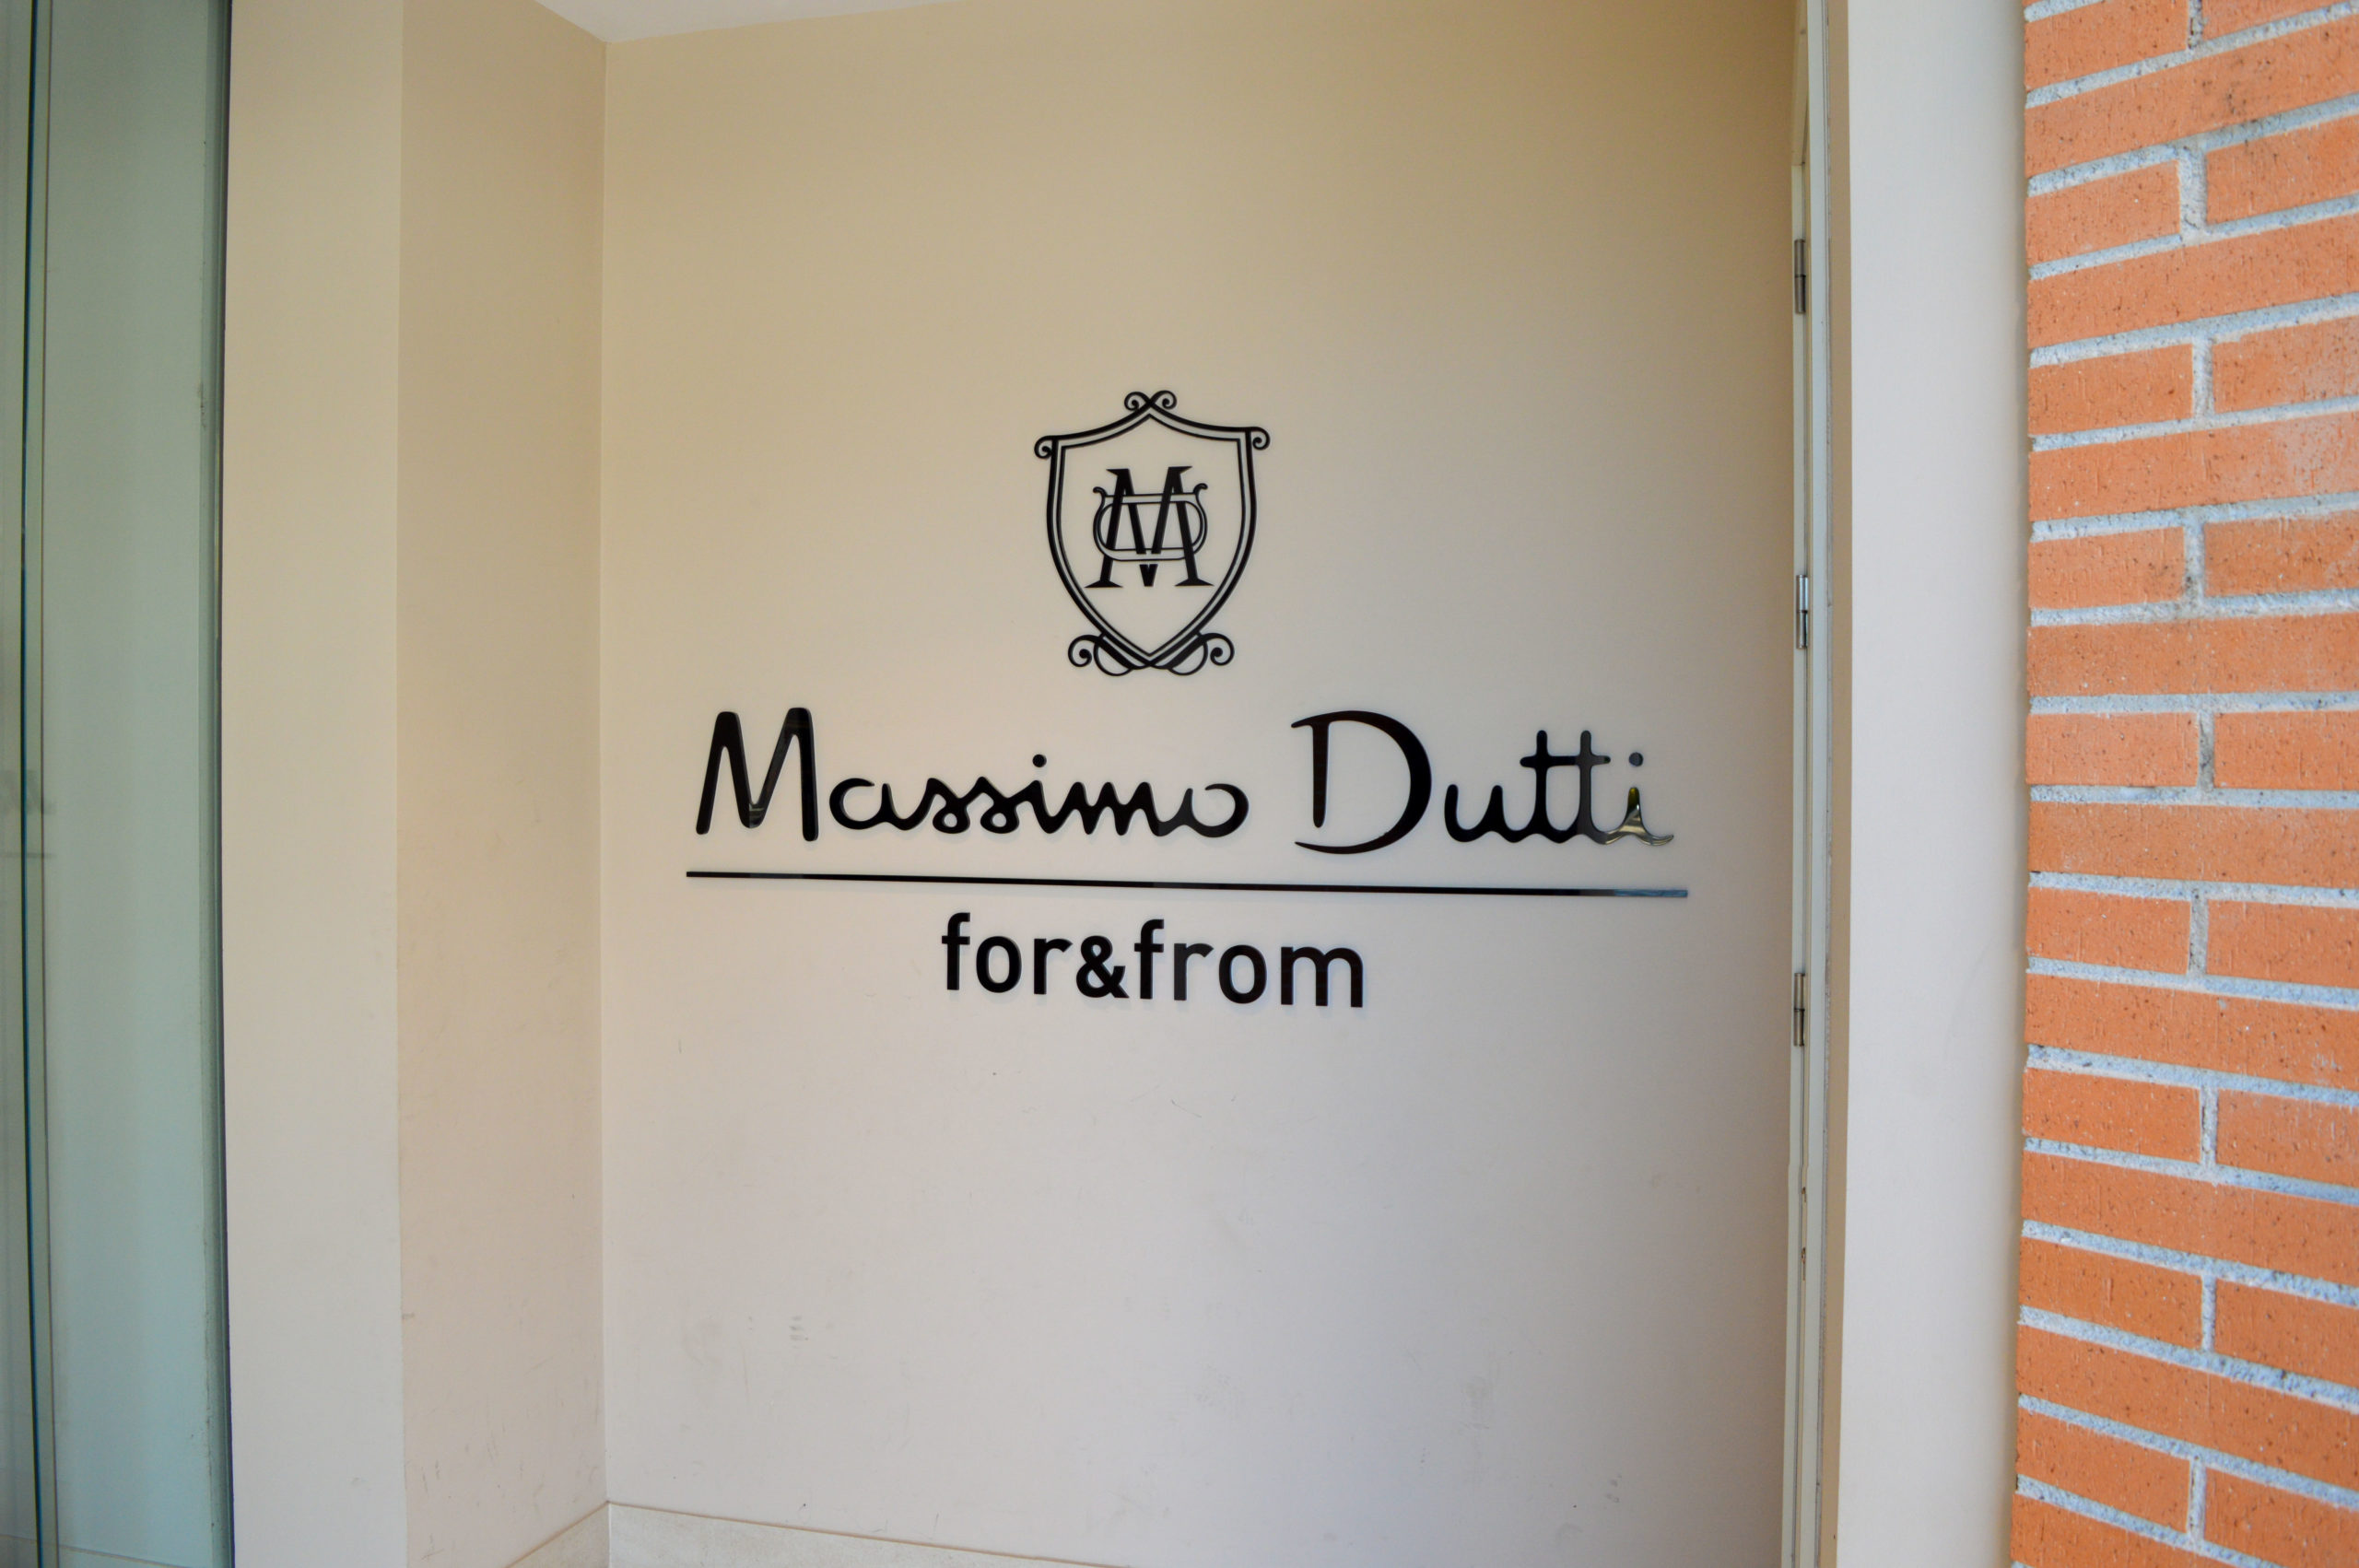 Massimo Dutti for&from